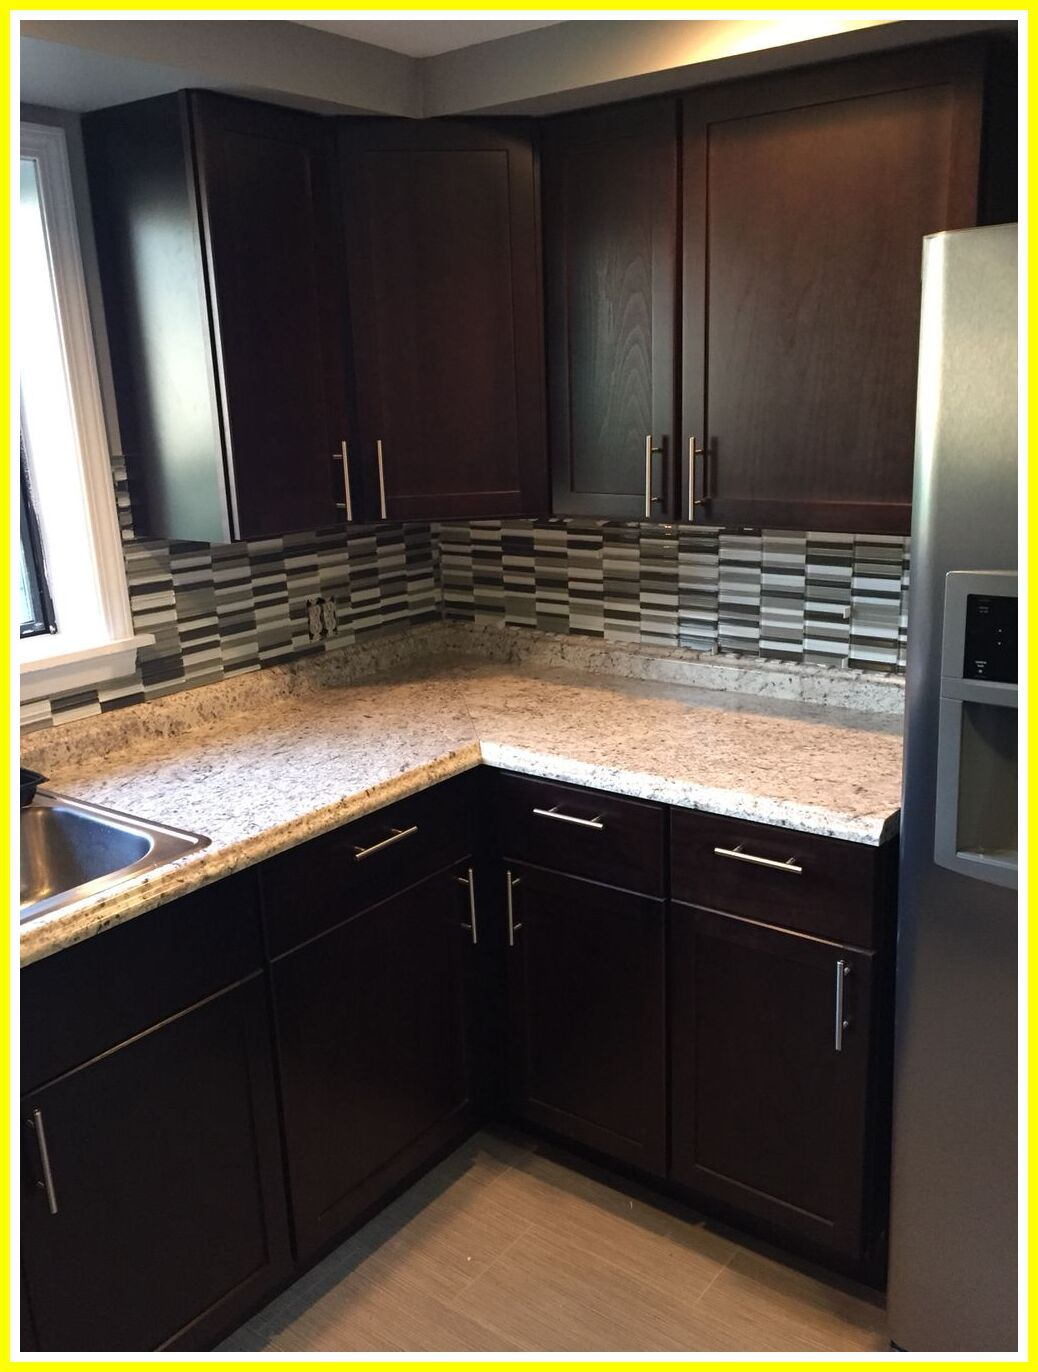 77 Reference Of Formica Countertops Home Depot In 2020 Home Depot Kitchen Kitchen Cabinets Cheap Kitchen Cabinets